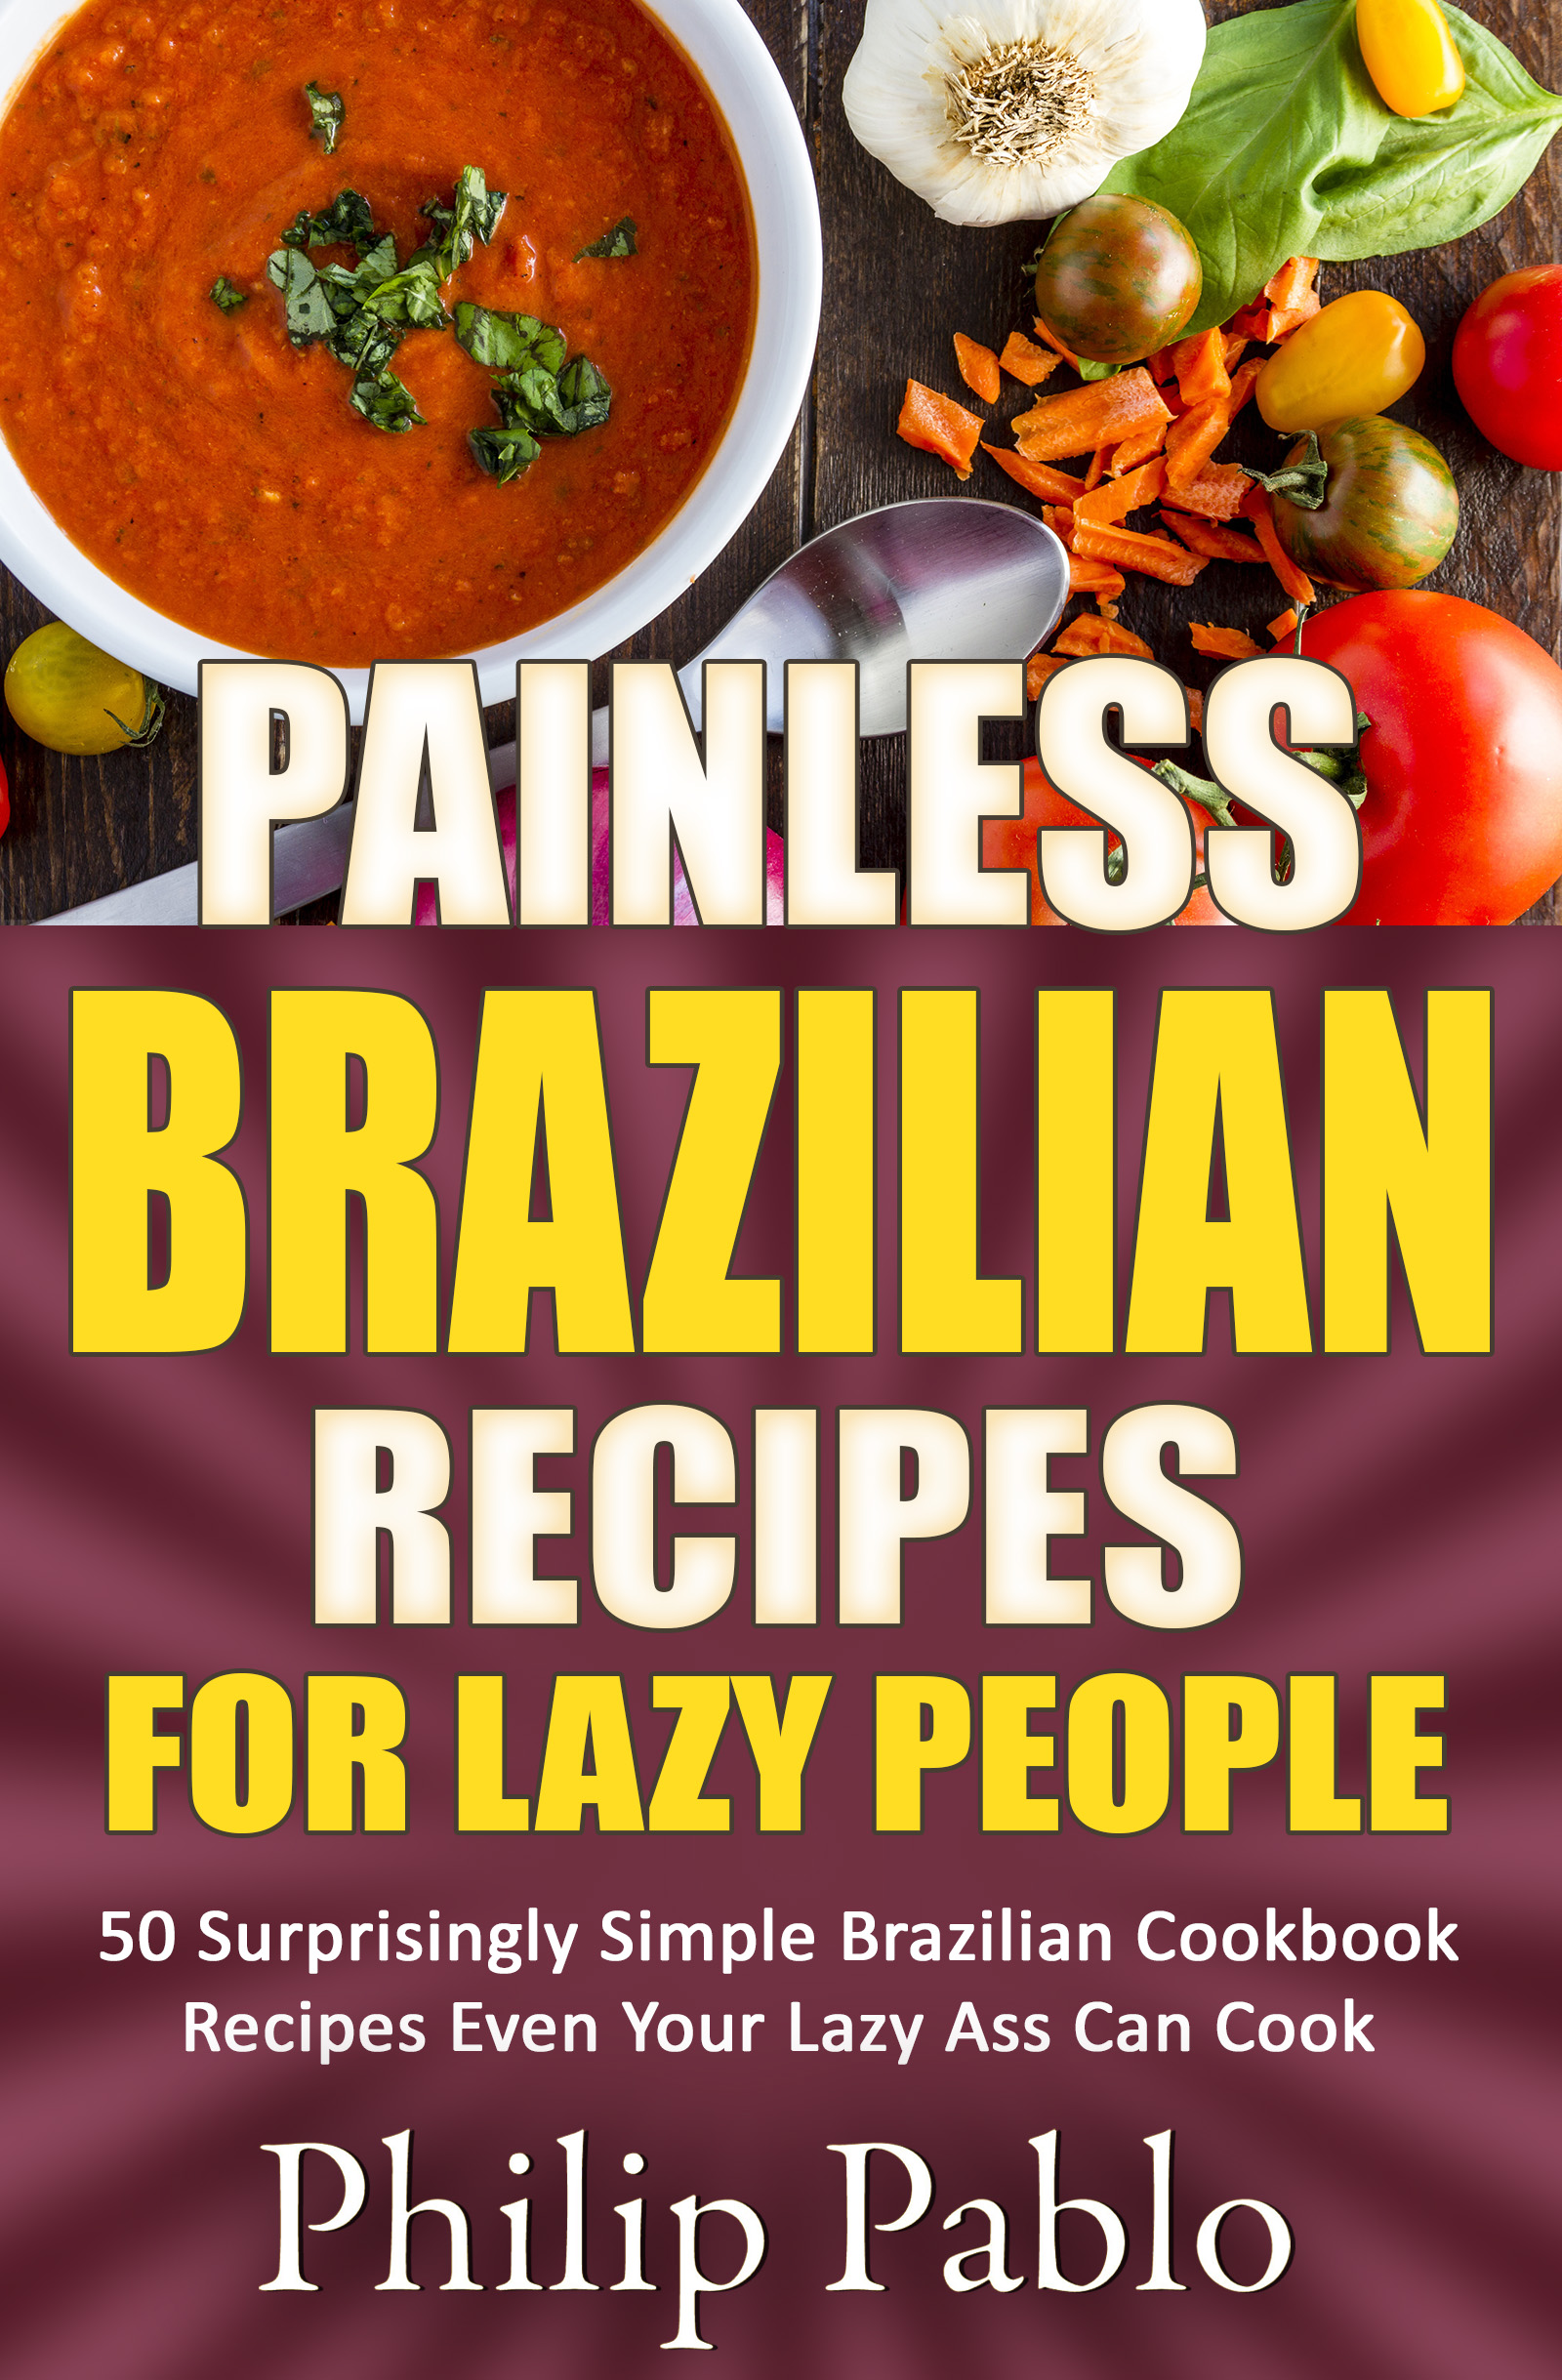 Smashwords painless brazilian recipes for lazy people 50 simple painless brazilian recipes for lazy people 50 simple brazilian cookbook recipes even your lazy ass can make forumfinder Images